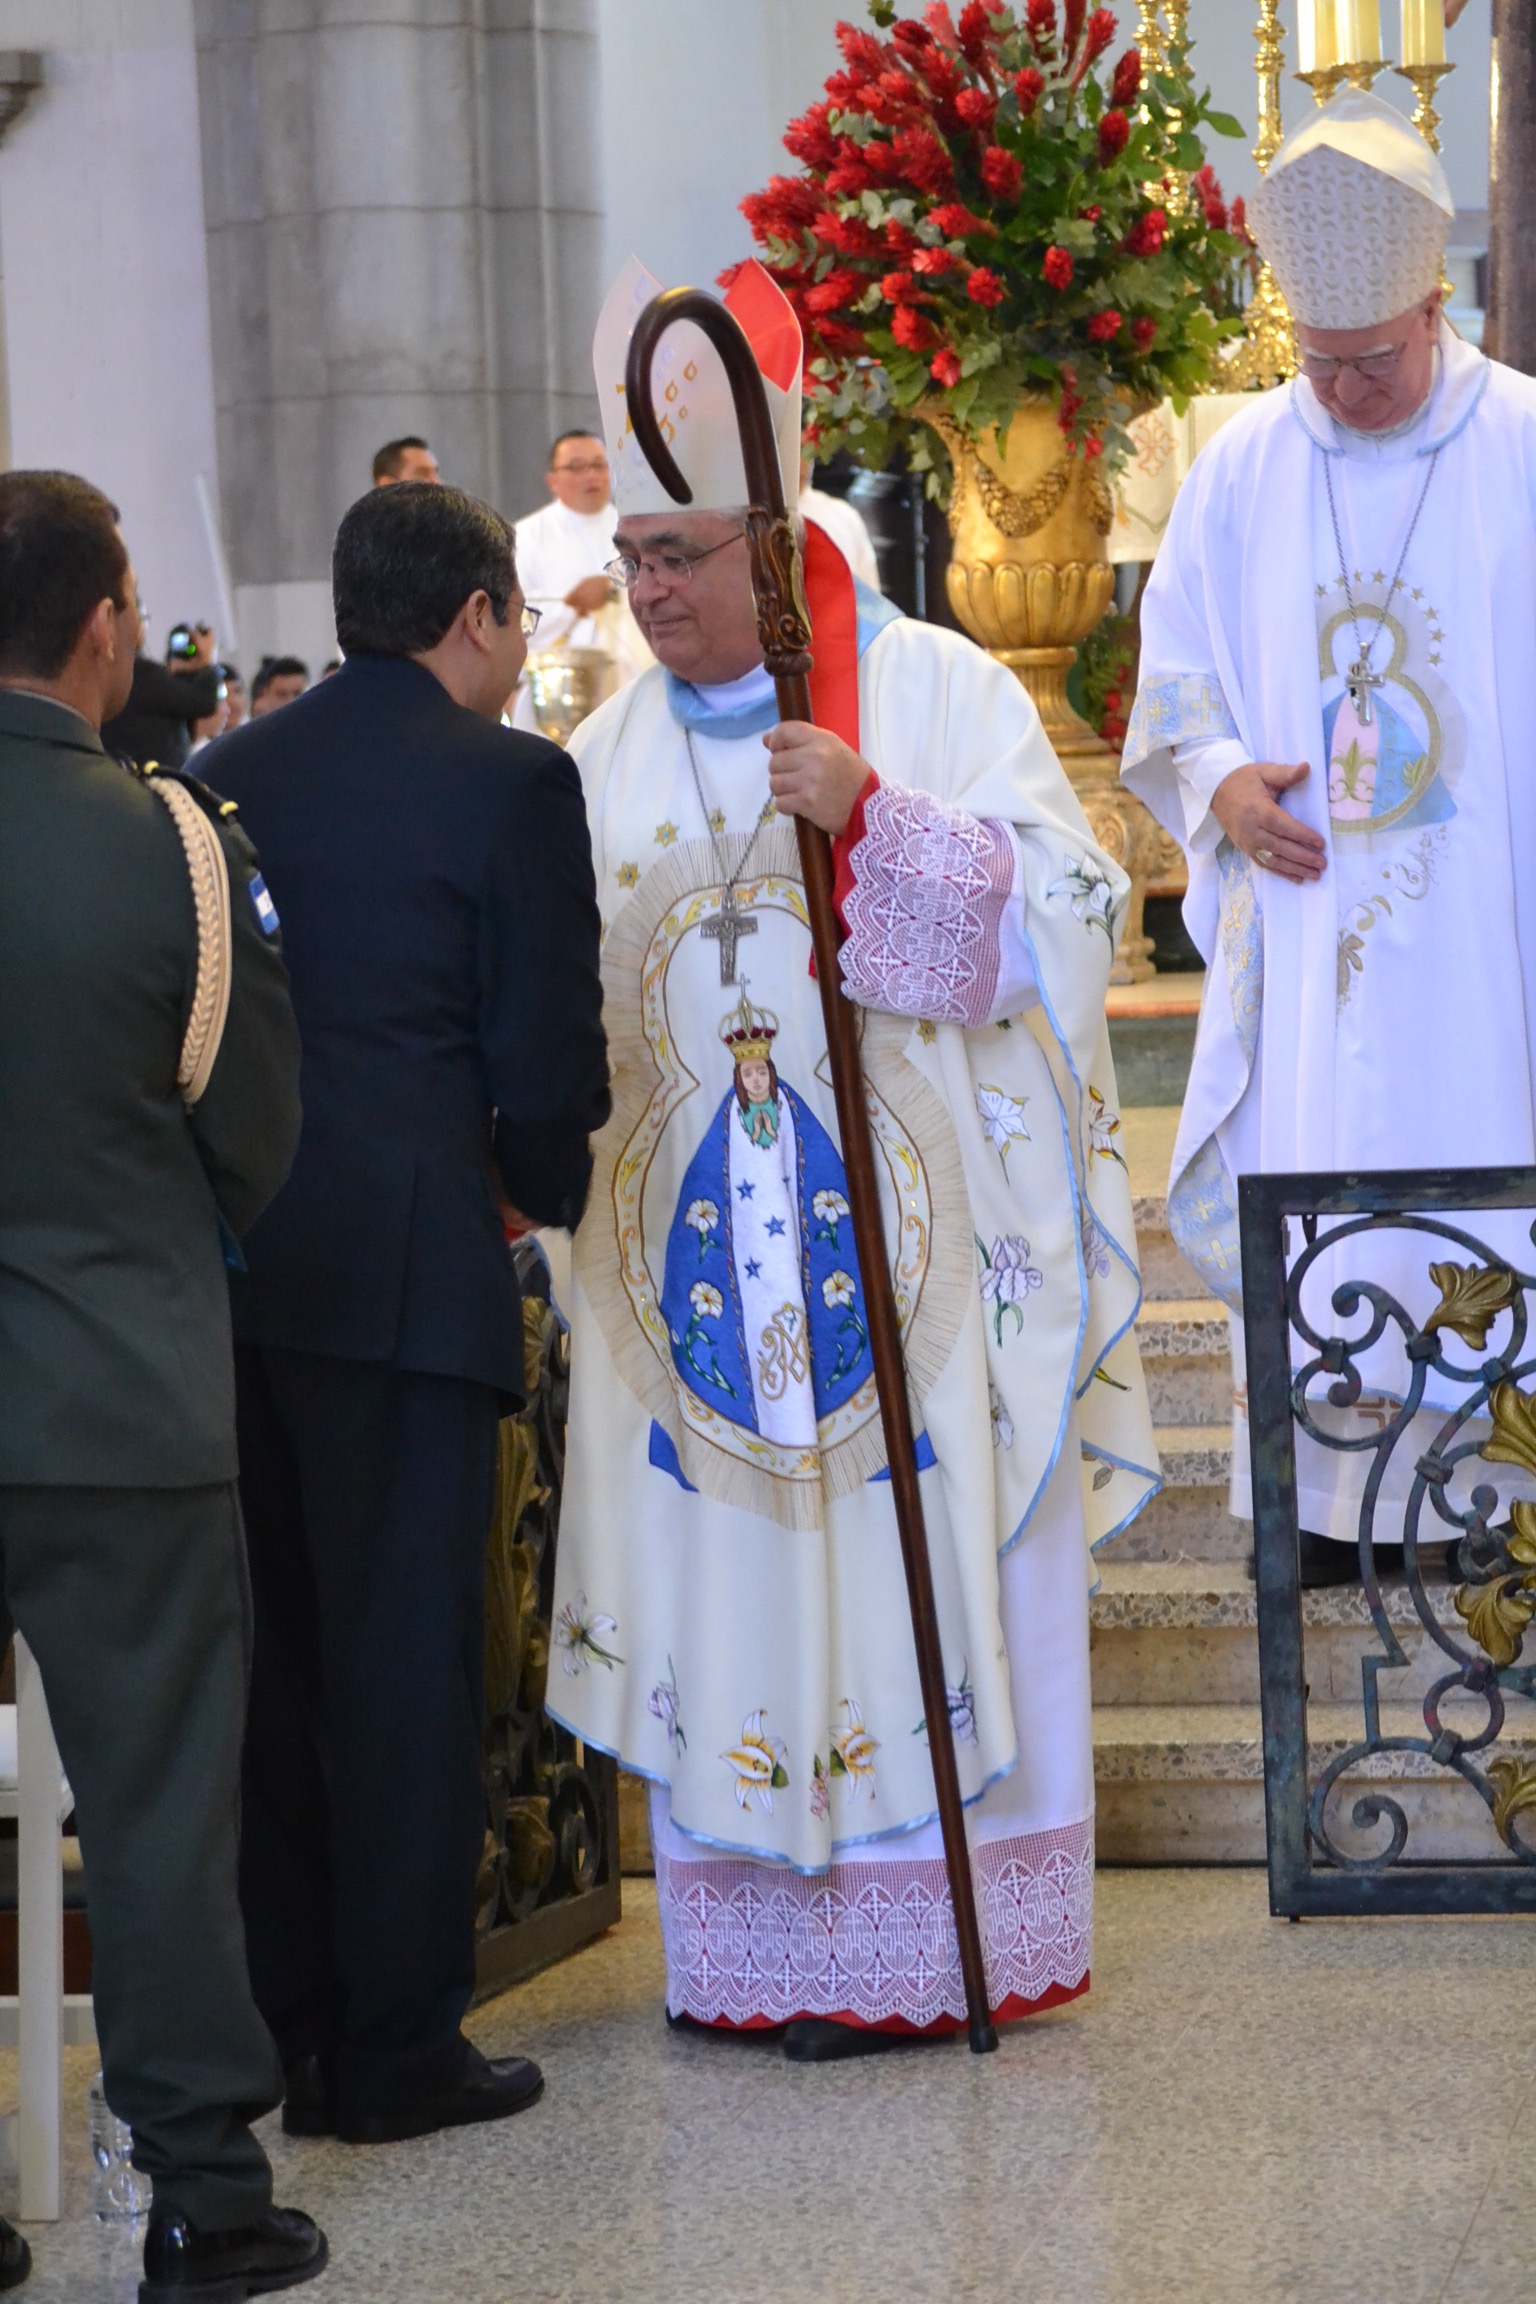 The Panamanian Cardinal who celebrate the official Mass for the Feast of Our Lady of Suyapa, one of three days of hourly Masses at the Basilica, embraces the President of Honduras (CT/Photo by Gail Finke)